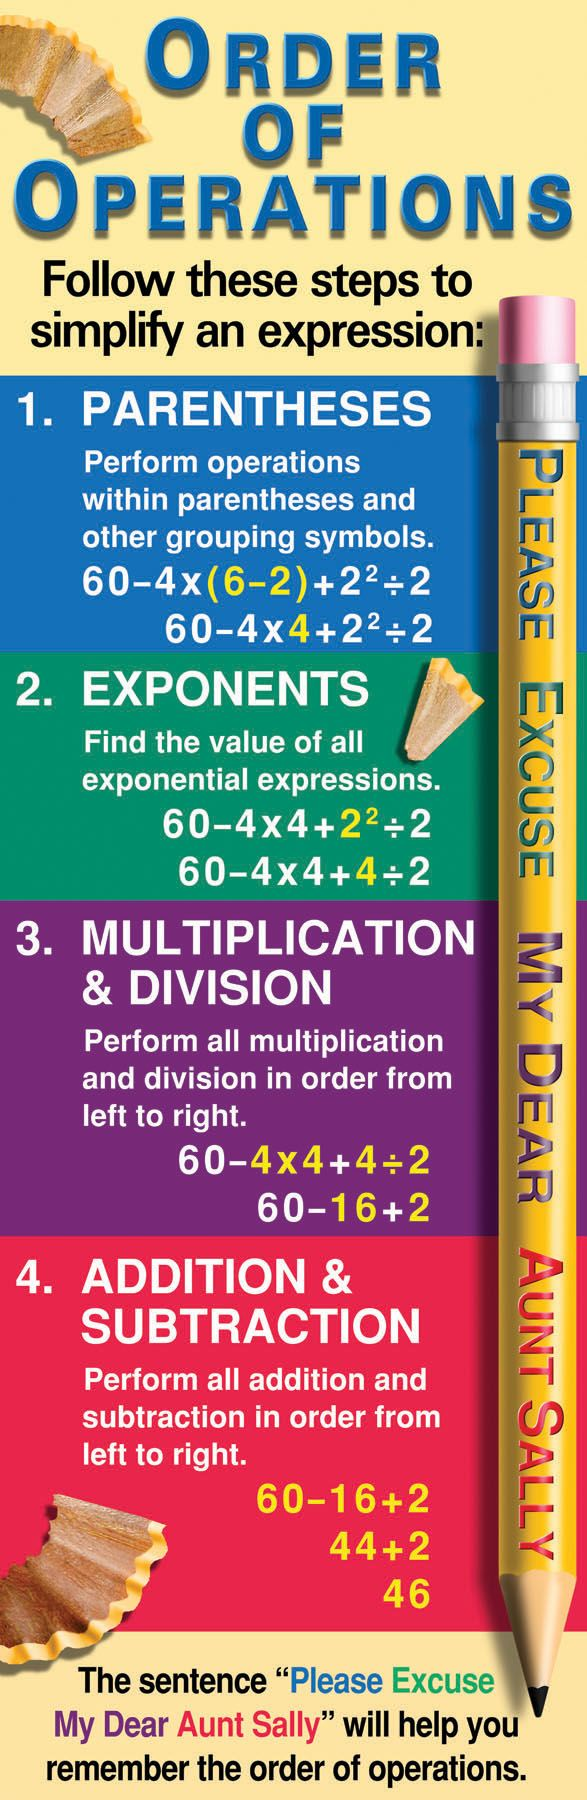 worksheet Math Order Of Operations Rules similiar order of operations signs keywords school classroom decorations colossal